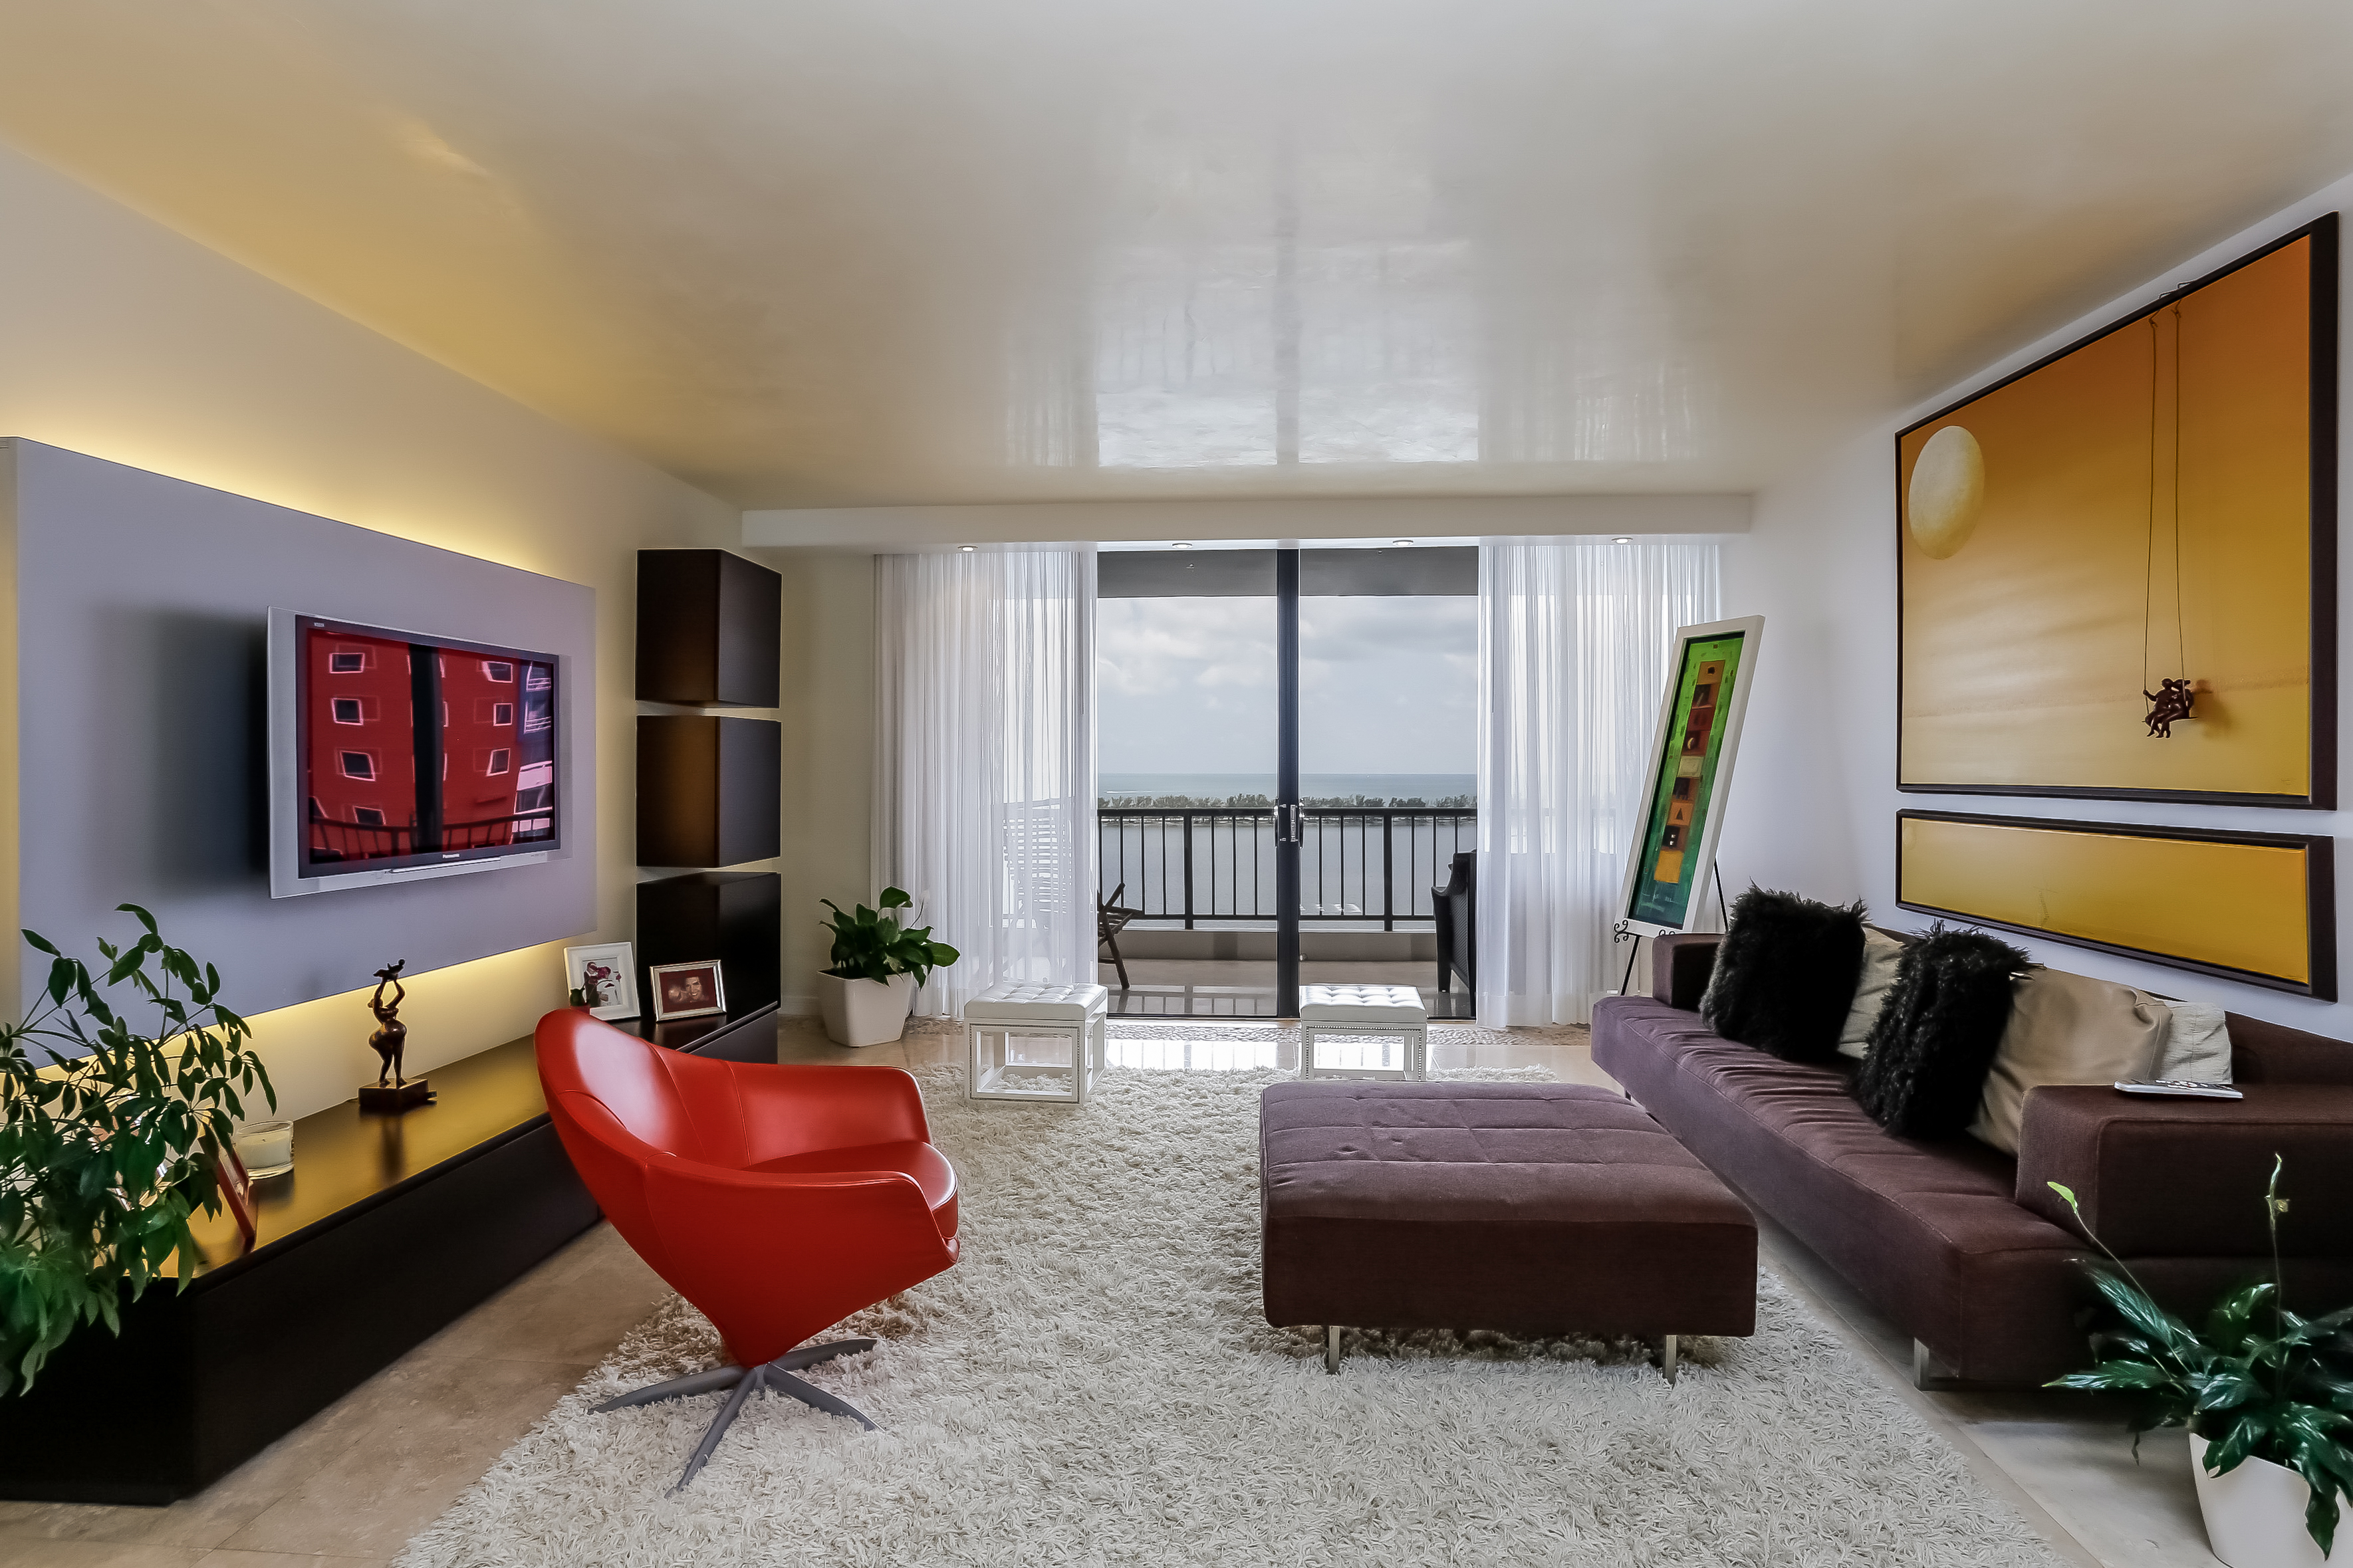 for Sale at 1581 Brickell Ave #1402 1581 Brickell Ave 1402 Miami, Florida, 33129 United States